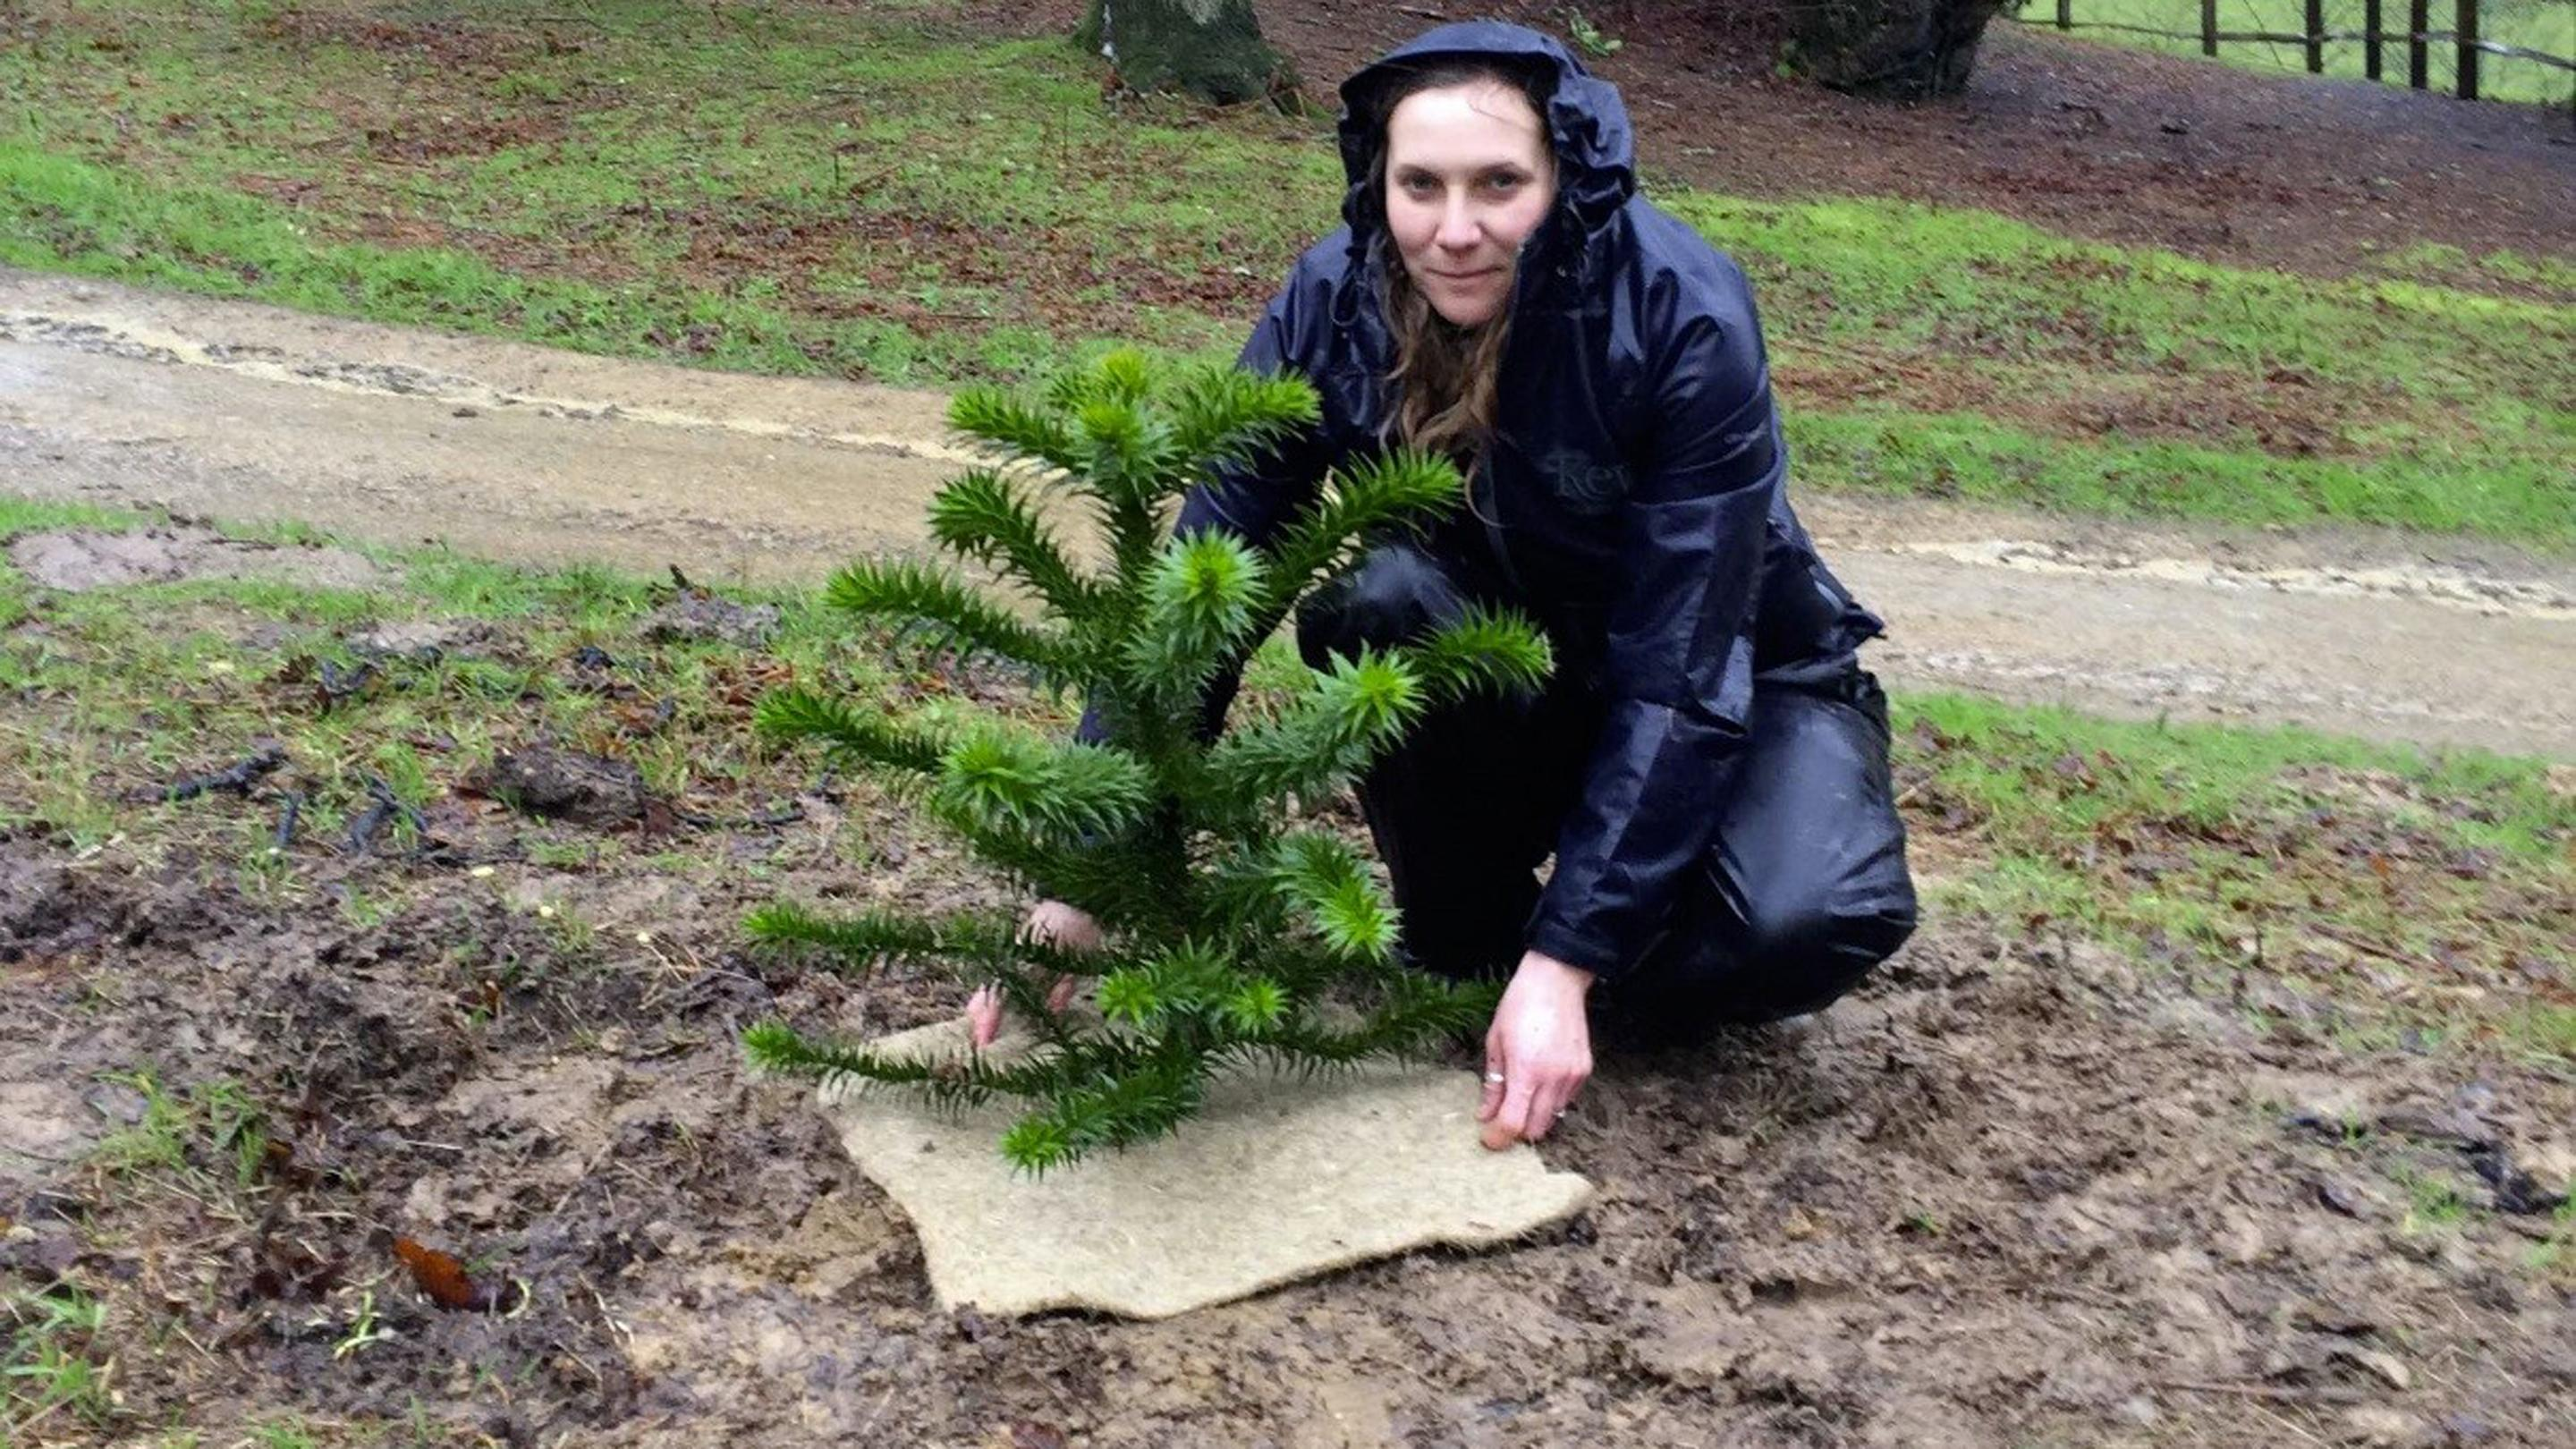 Rare monkey puzzles at wakehurst kew for Horticulturist crossword clue